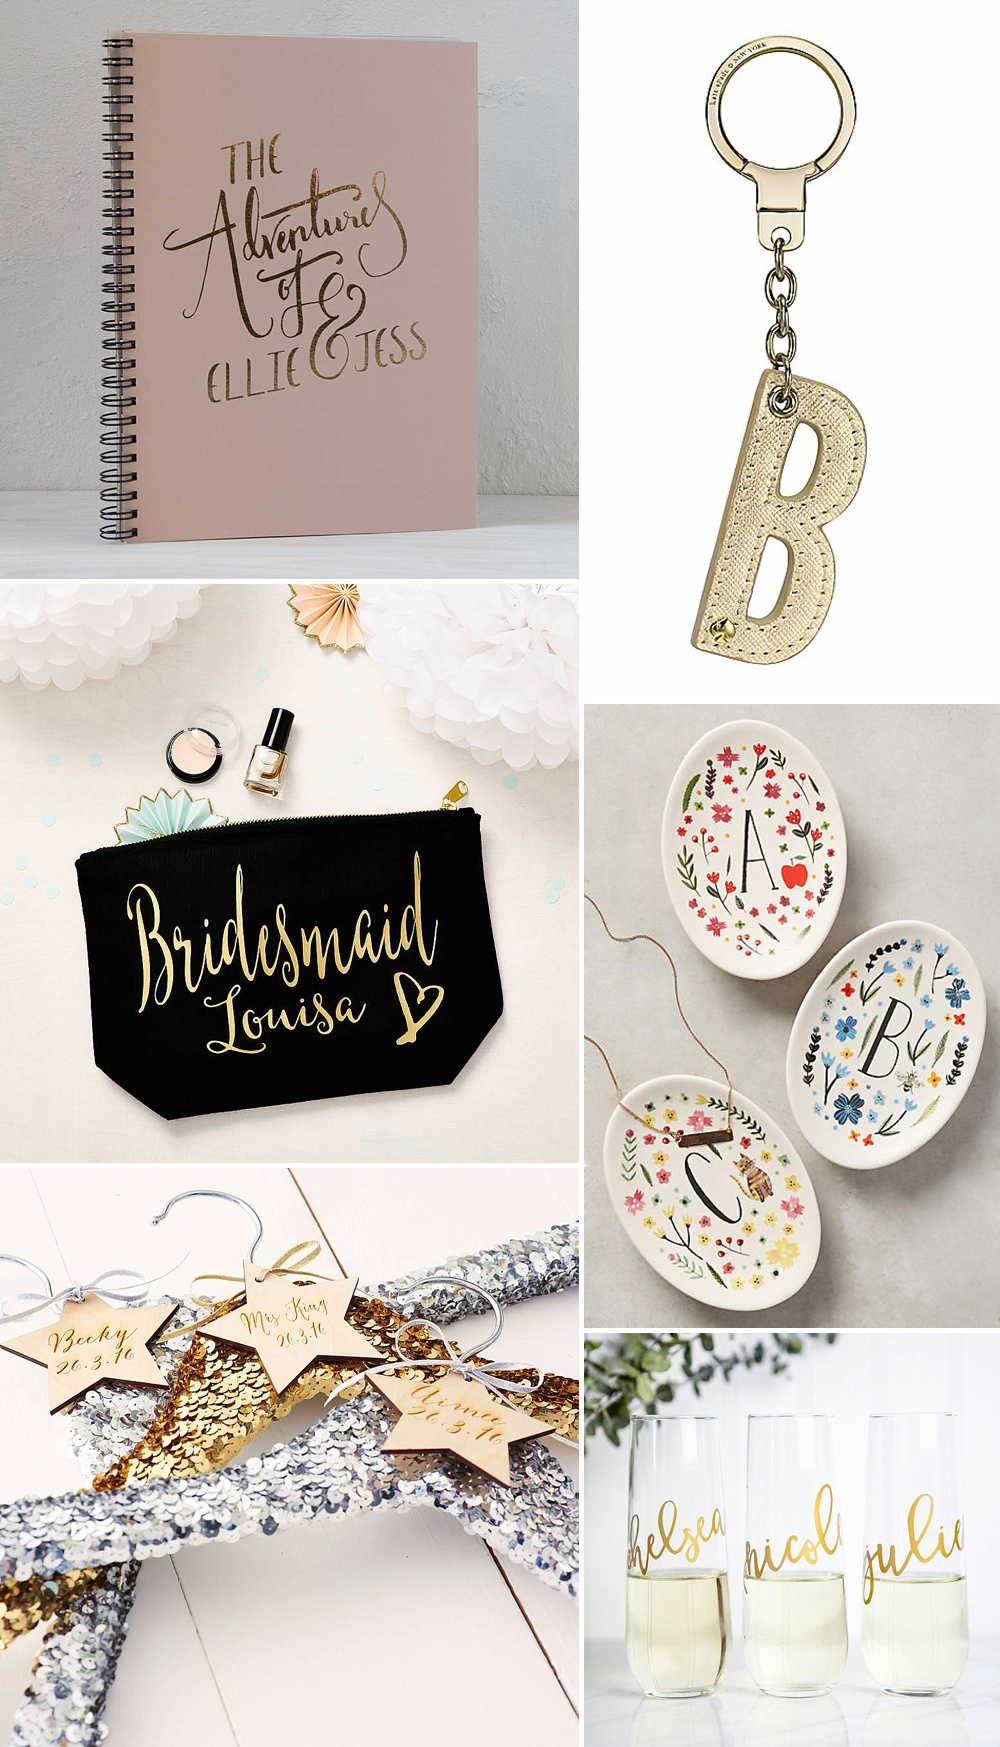 Wedding Gift Ideas Uk: The Best Bridesmaids Gifts Ideas & Thanks You Presents UK